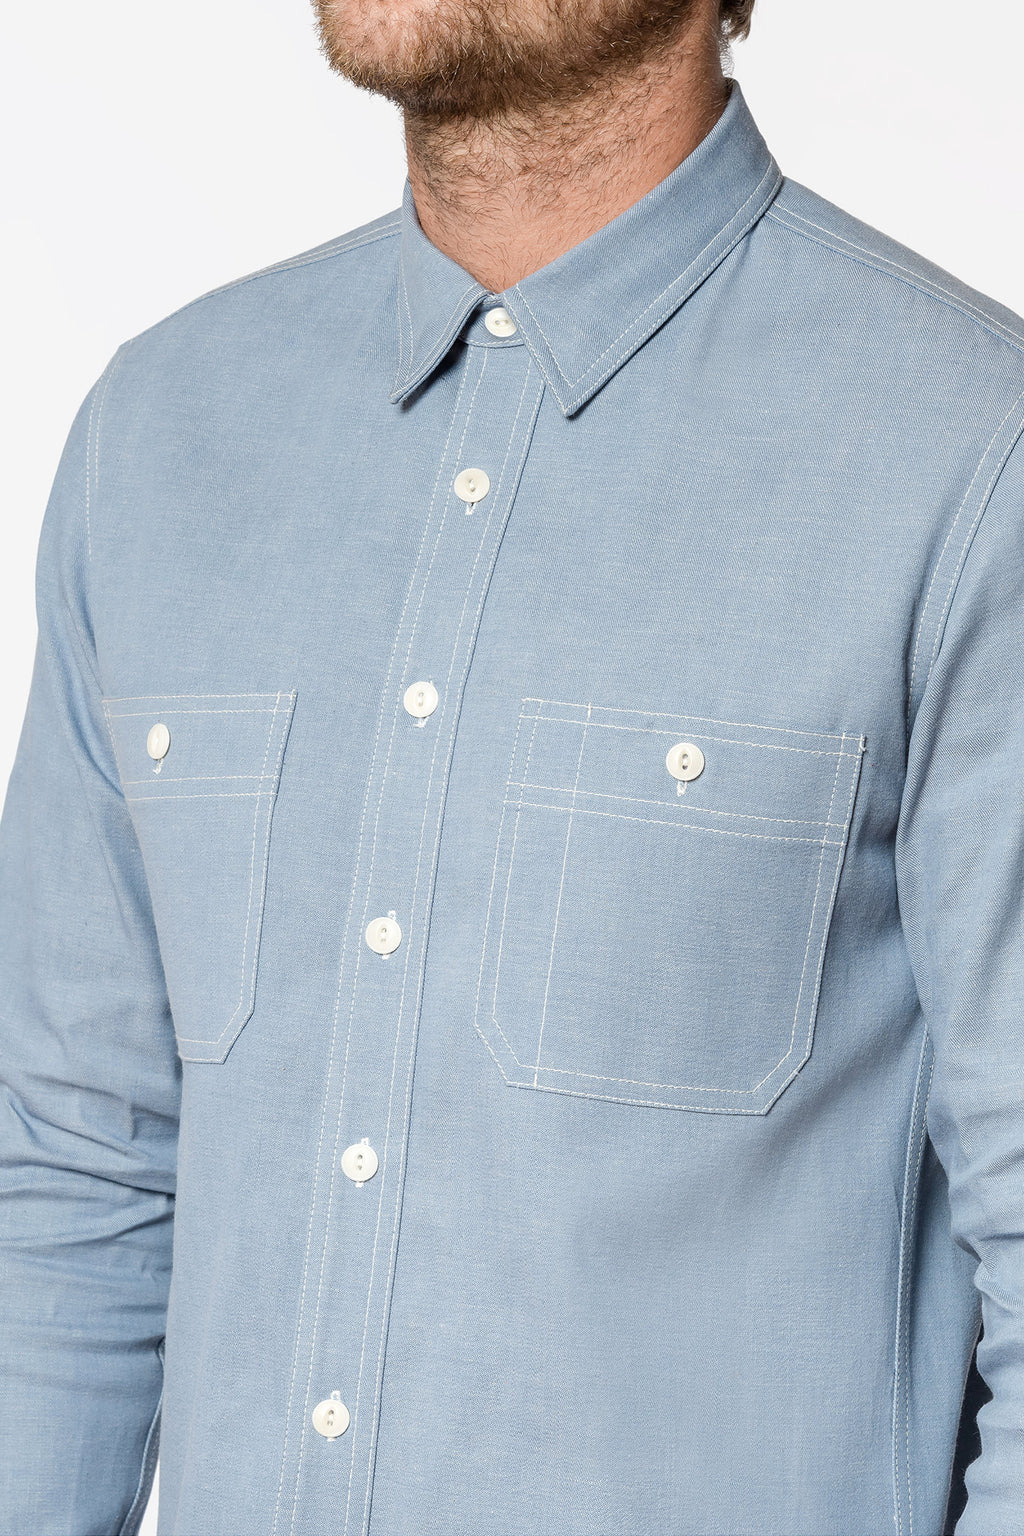 MEN'S WORKER SHIRT